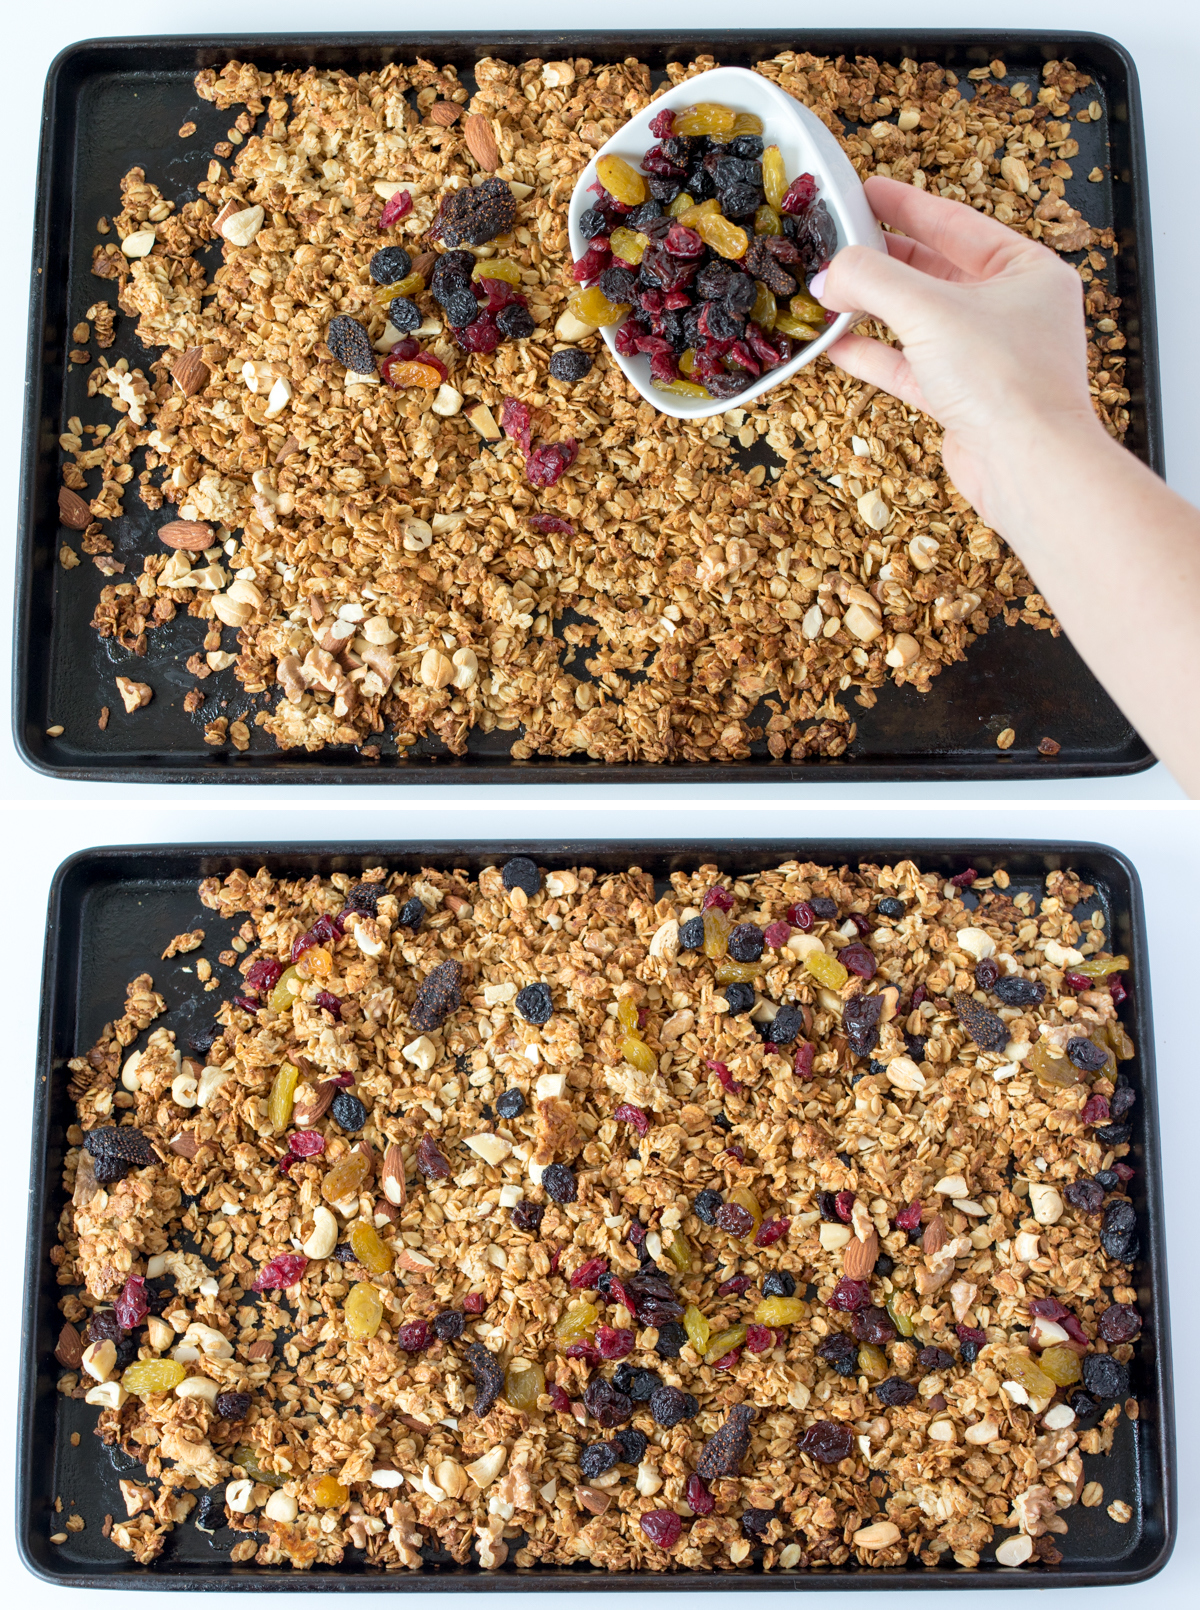 Berry nut granola step3 collage